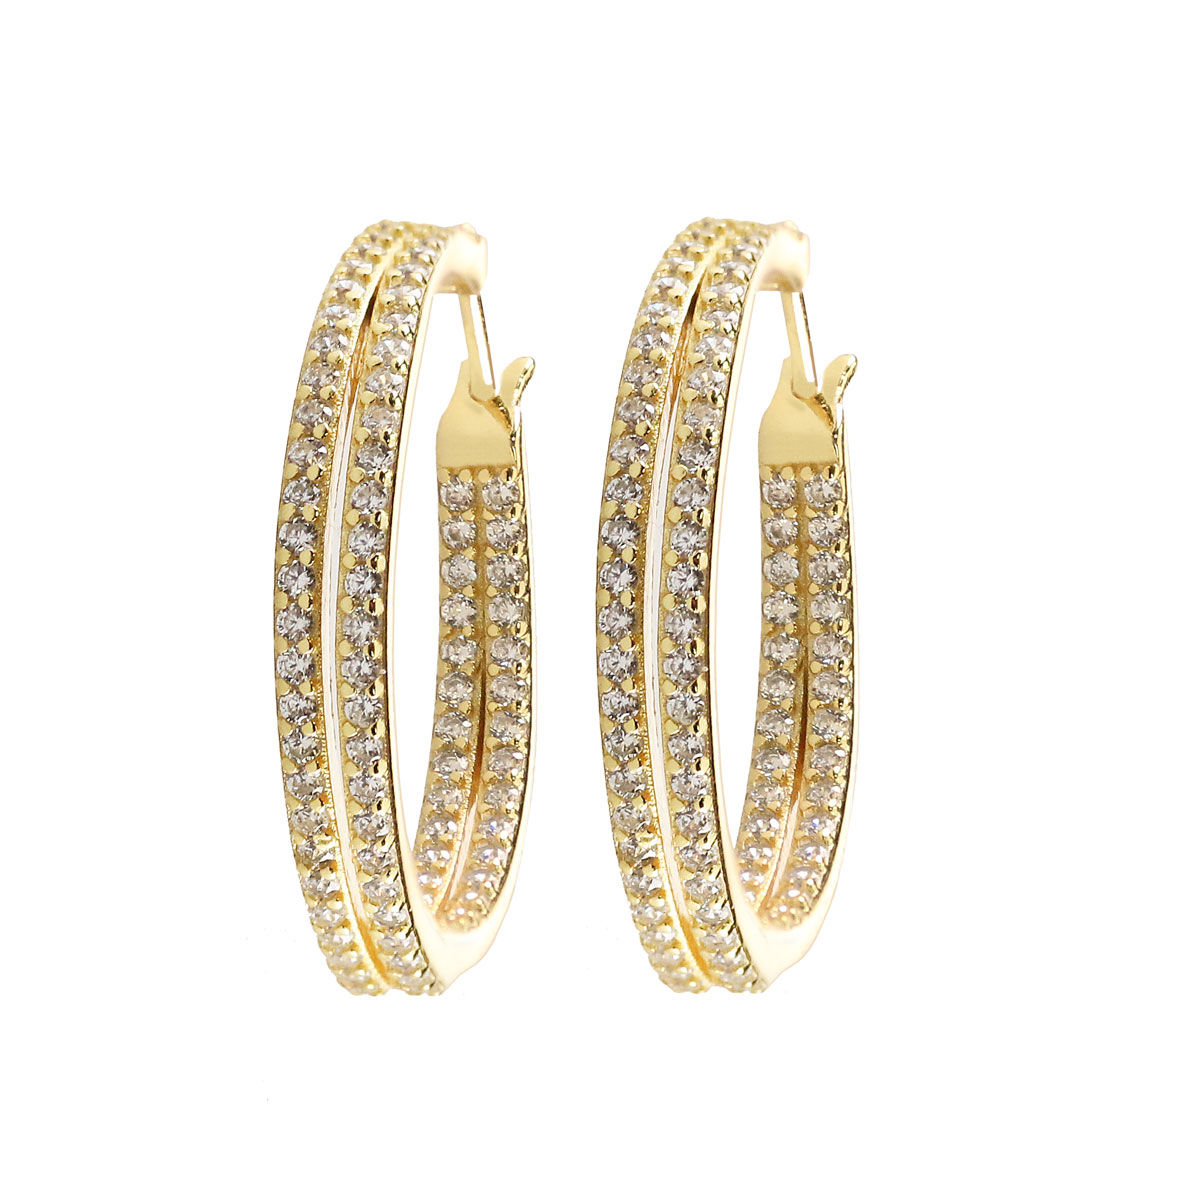 Cashs Ireland, Elyse Crystal and Gold Pave Double Hoop Pierced Earrings